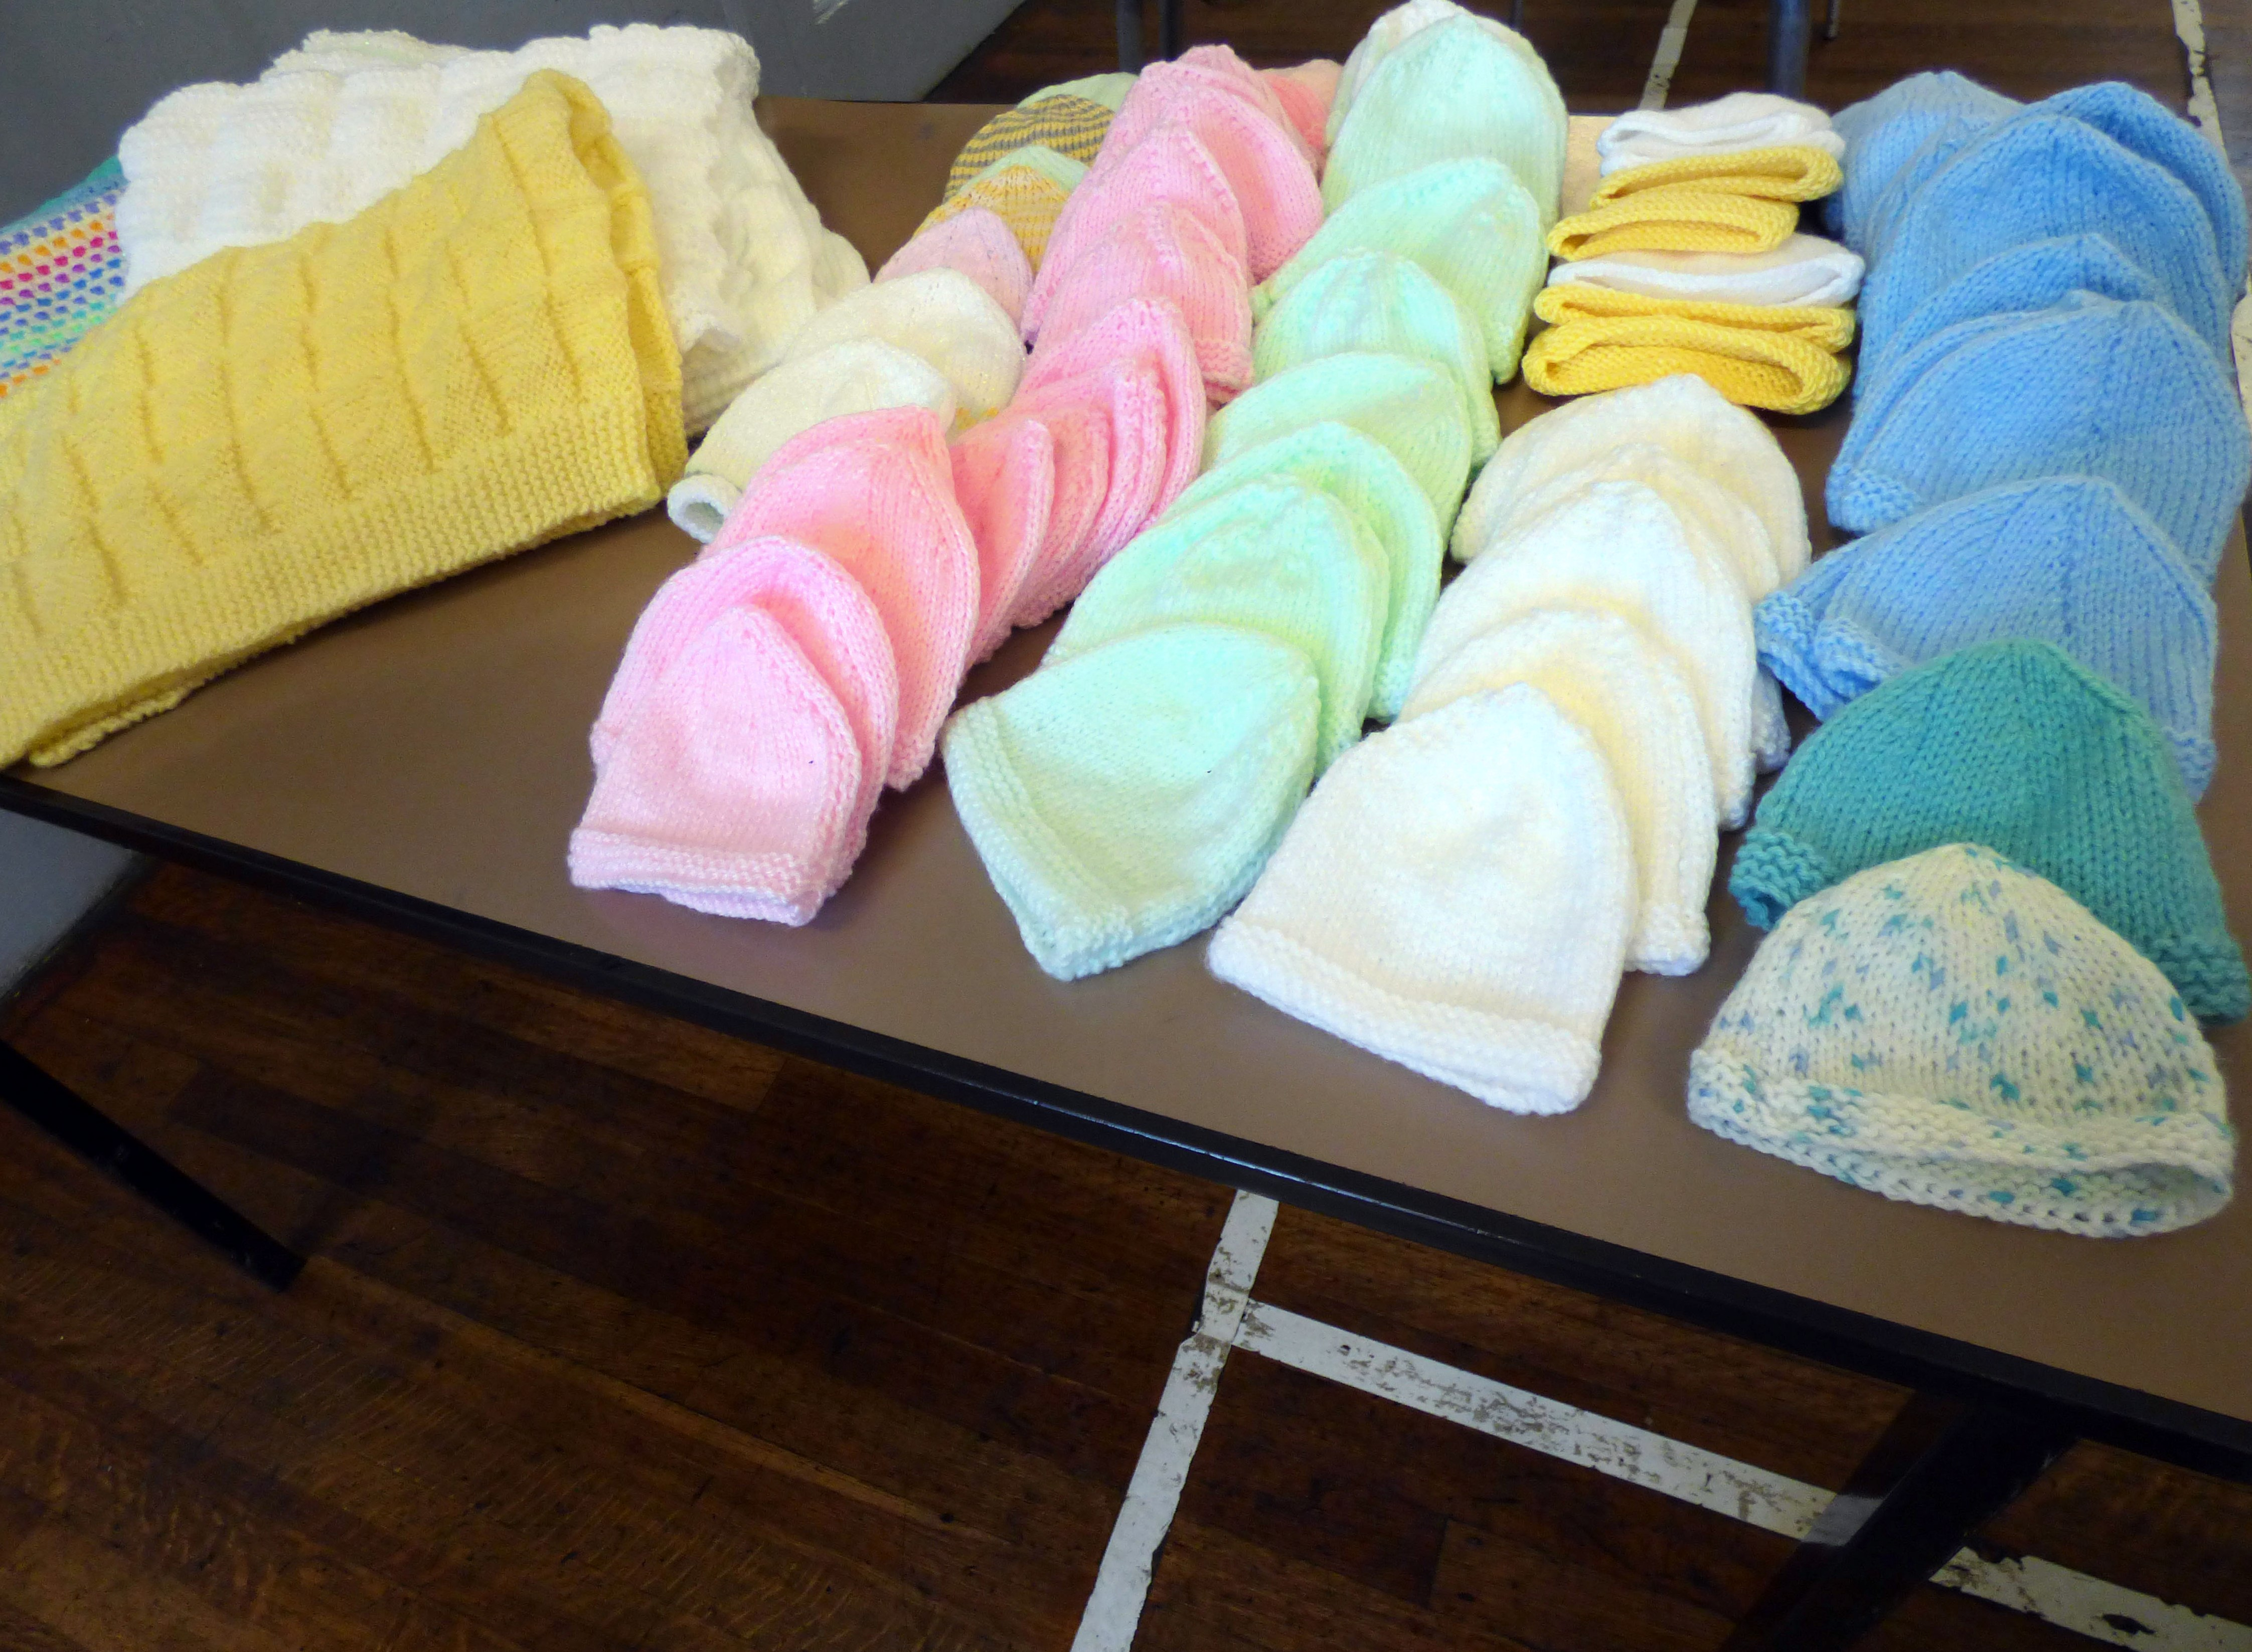 donation of knitted hats and blankets to Project Linus from MEG members and friends